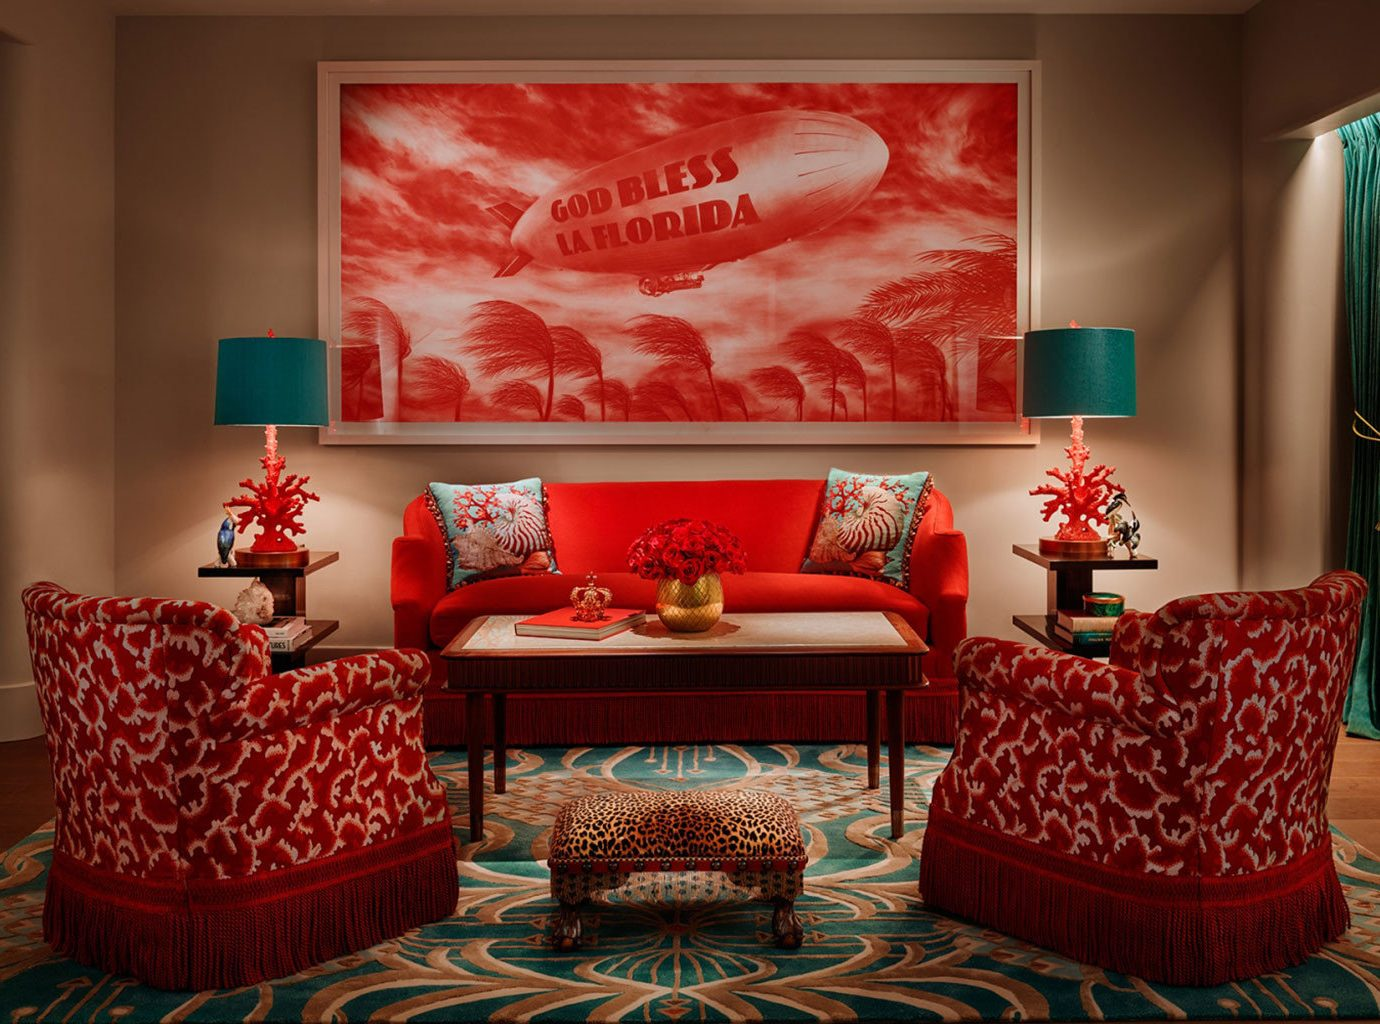 Hotels wall indoor room red living room Living interior design modern art home Design Suite area decorated furniture